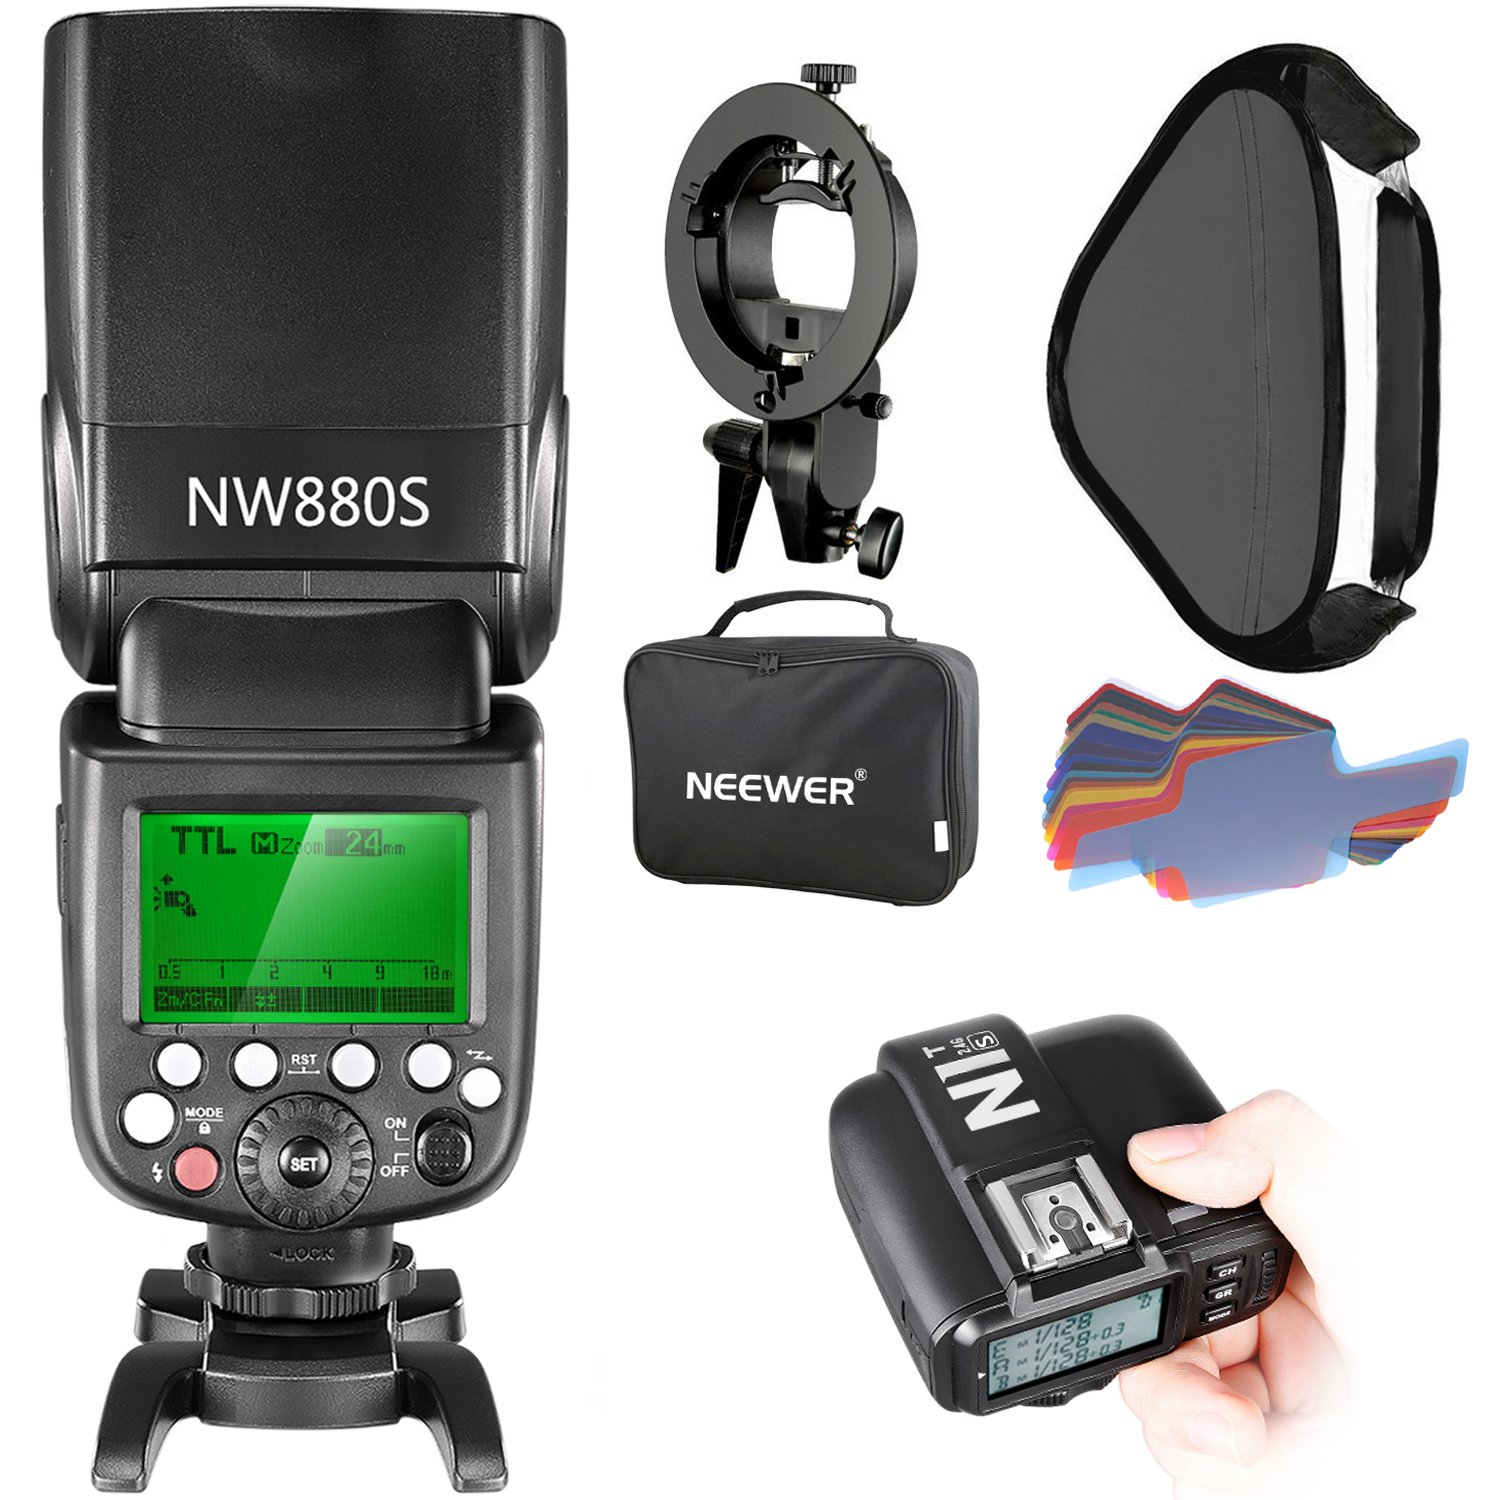 Neewer 2.4G Wireless 1/8000 HSS TTL Master/Slave Flash Speedlite Kit for Sony Camera with New Mi Shoe, Includes:NW880S Flash, N1T-S Trigger, S-type Bracket, 16x16 inches Softbox, 20 Pieces Color Filter 90088783